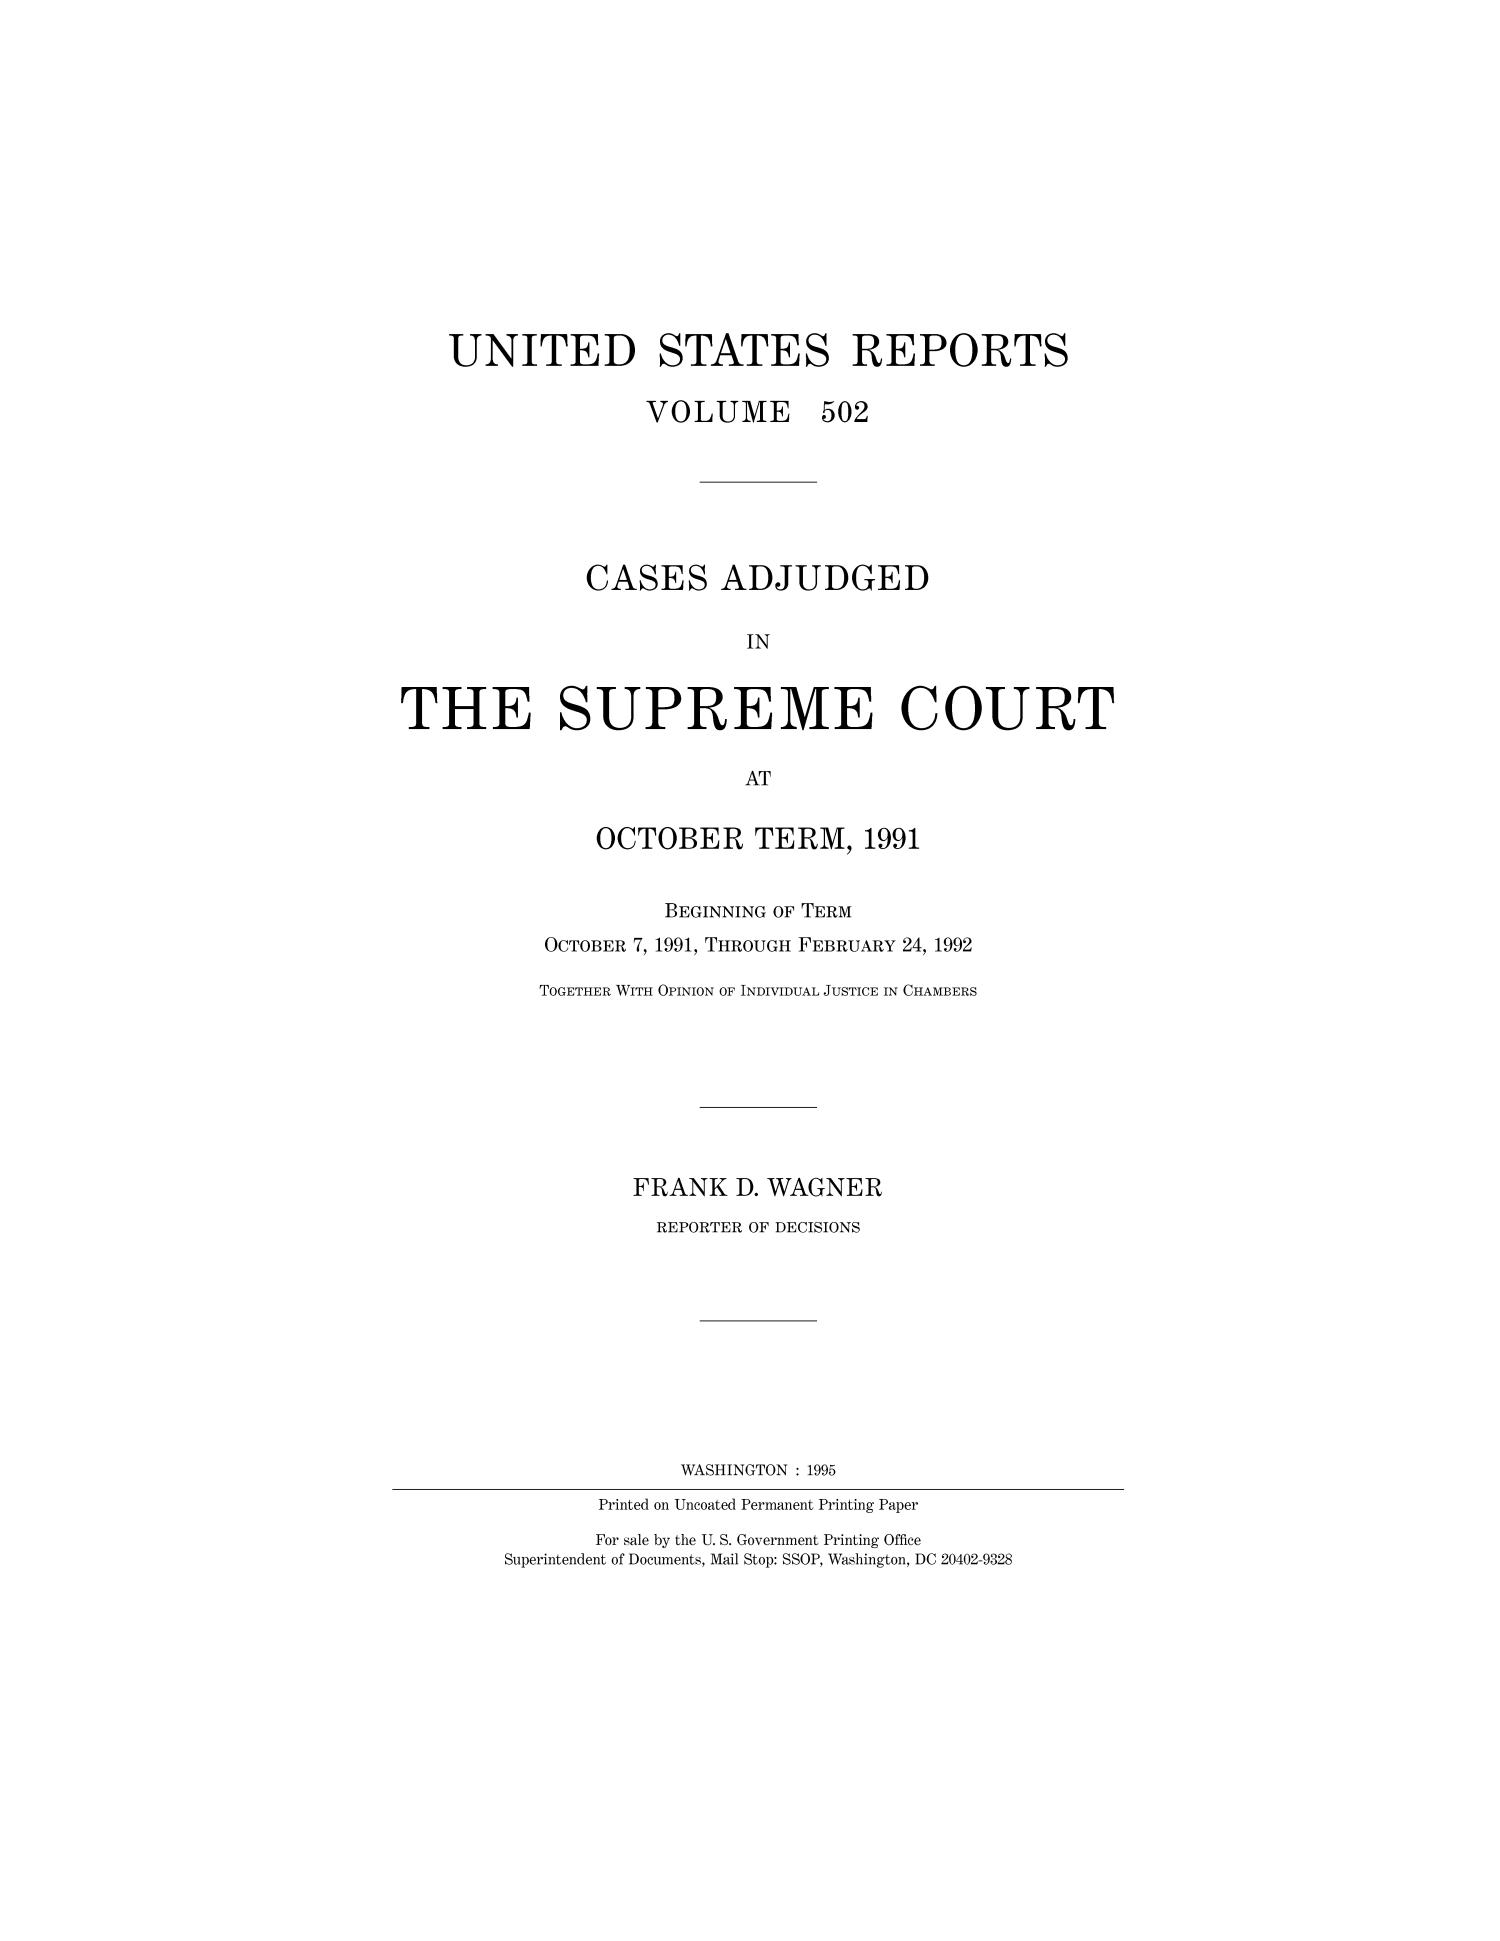 Cases Adjudged in The Supreme Court at October Term, 1991                                                                                                      Title Page